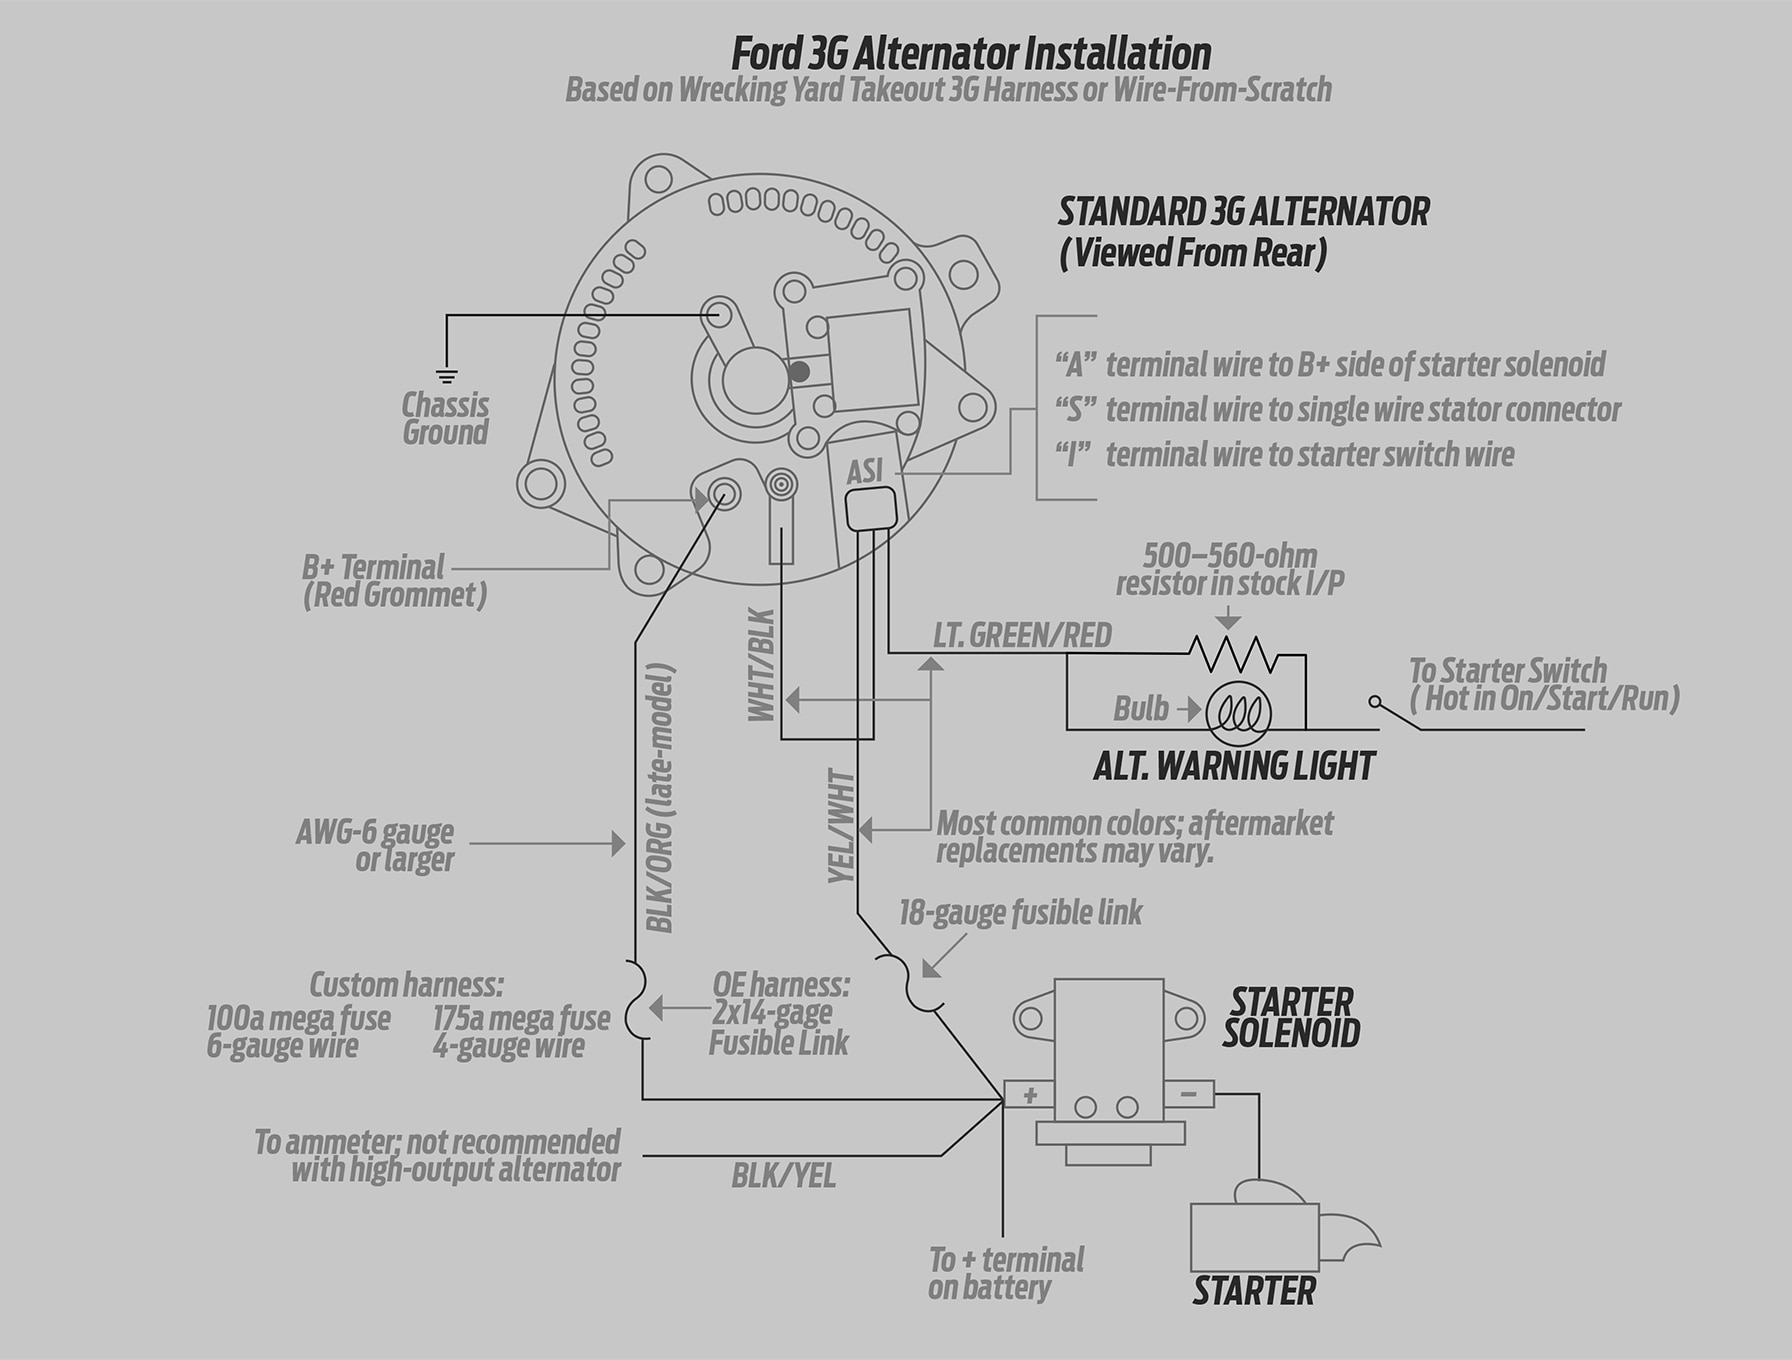 hight resolution of how to install a high output ford 3g alternator into older fords late model ford 302 alternator wiring diagram